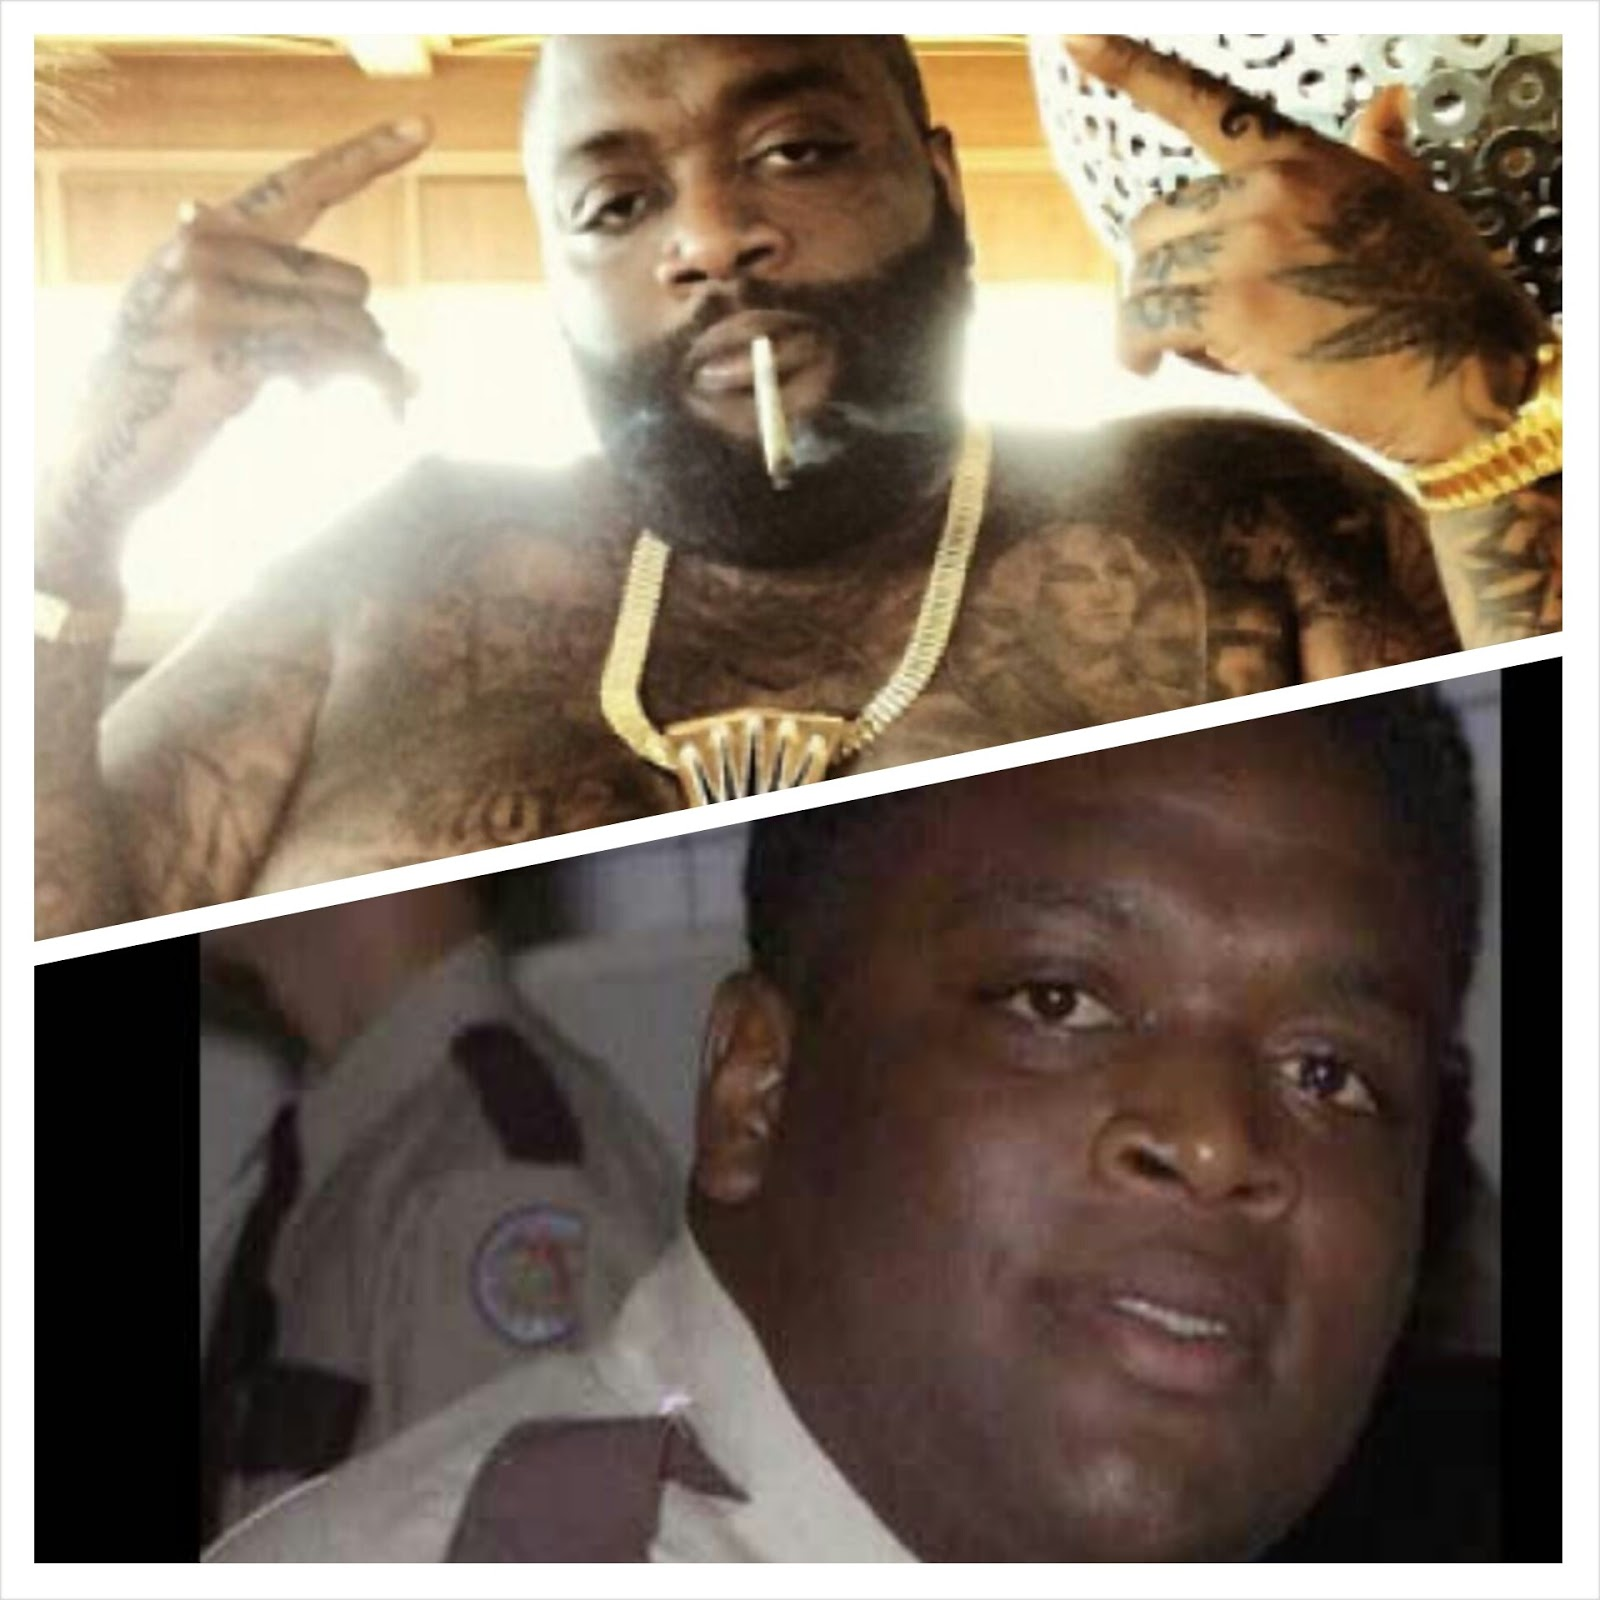 rick ross correctional officer - Rick Ross On His Past As A Corrections Officer